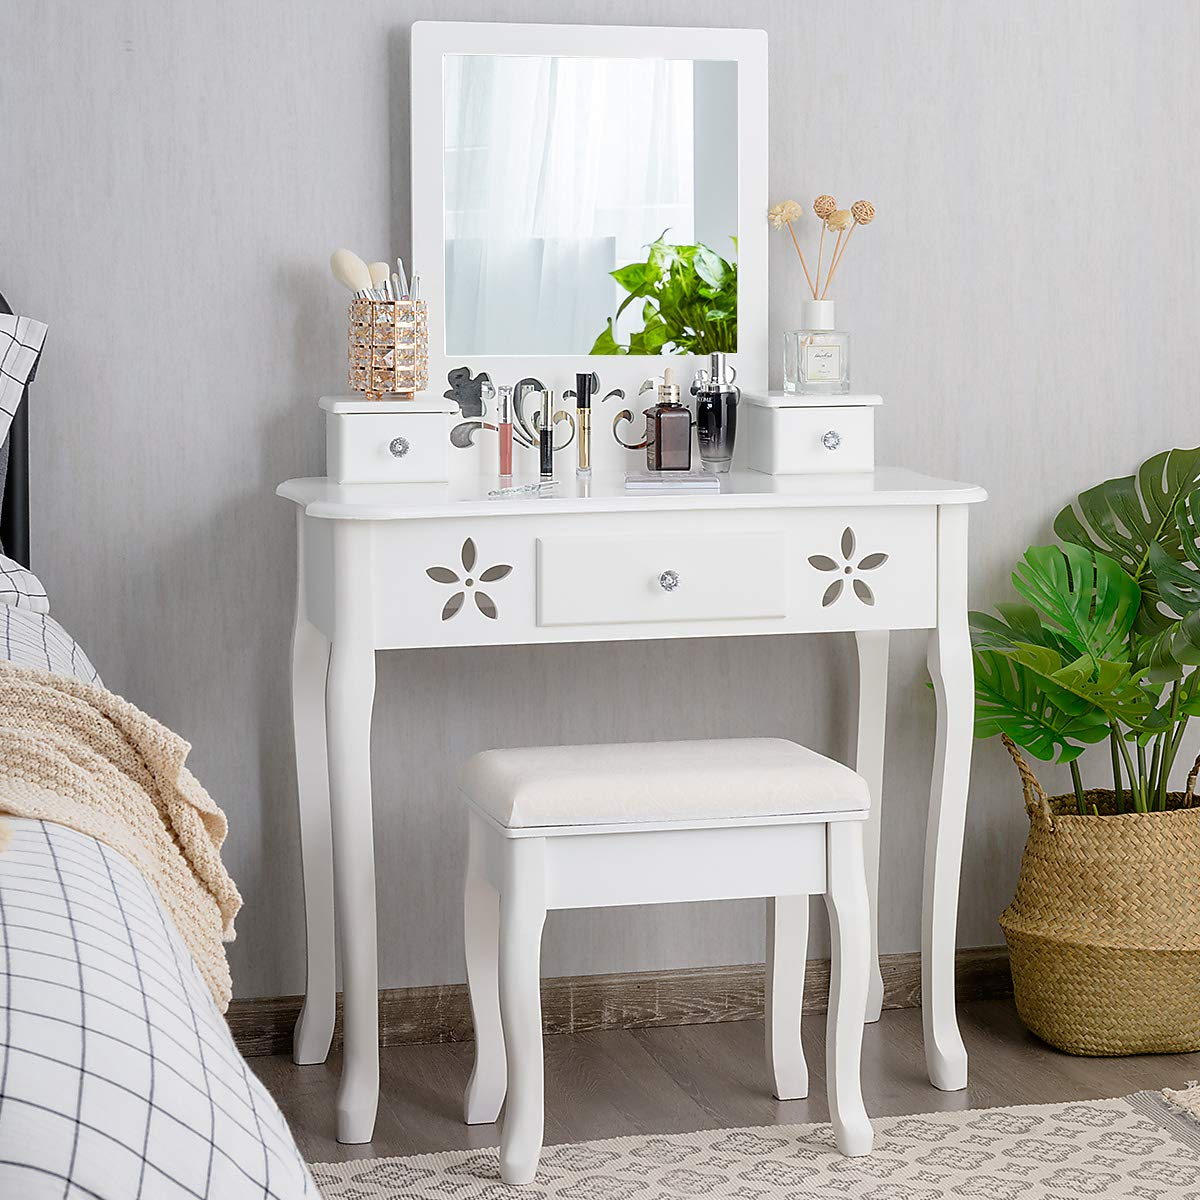 CHARMAID Vanity Table Set with Large Square Mirror and Hollow Carved Frame, Makeup Table with 3 Drawers and Crystal Handle, Dressing Table with Cushioned Stool for Women Girls (White) by CHARMAID